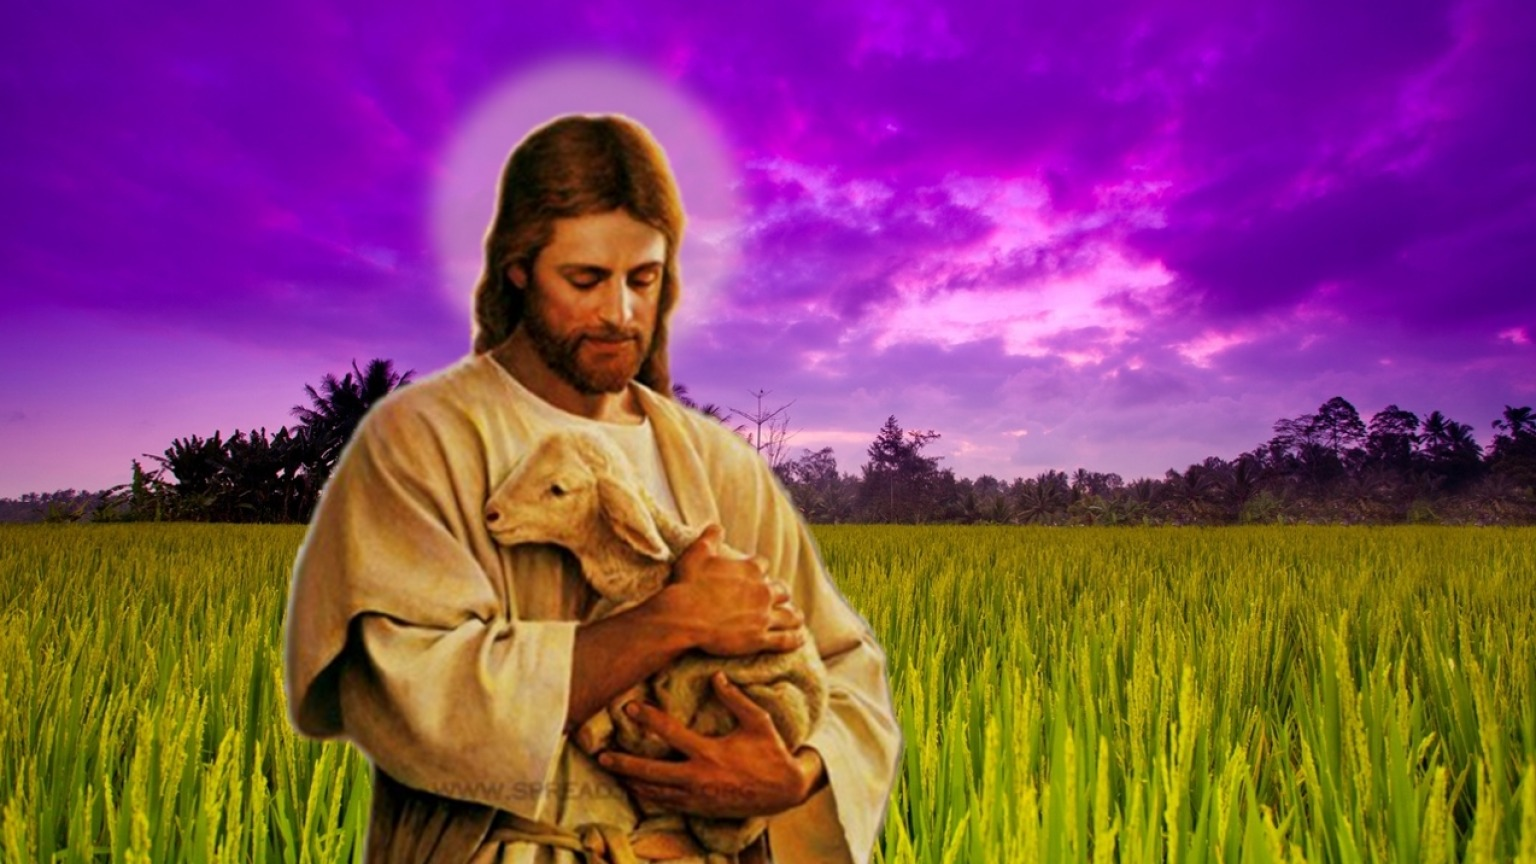 jesus christ wallpaper sized images pic set 13 - HD 1536×864